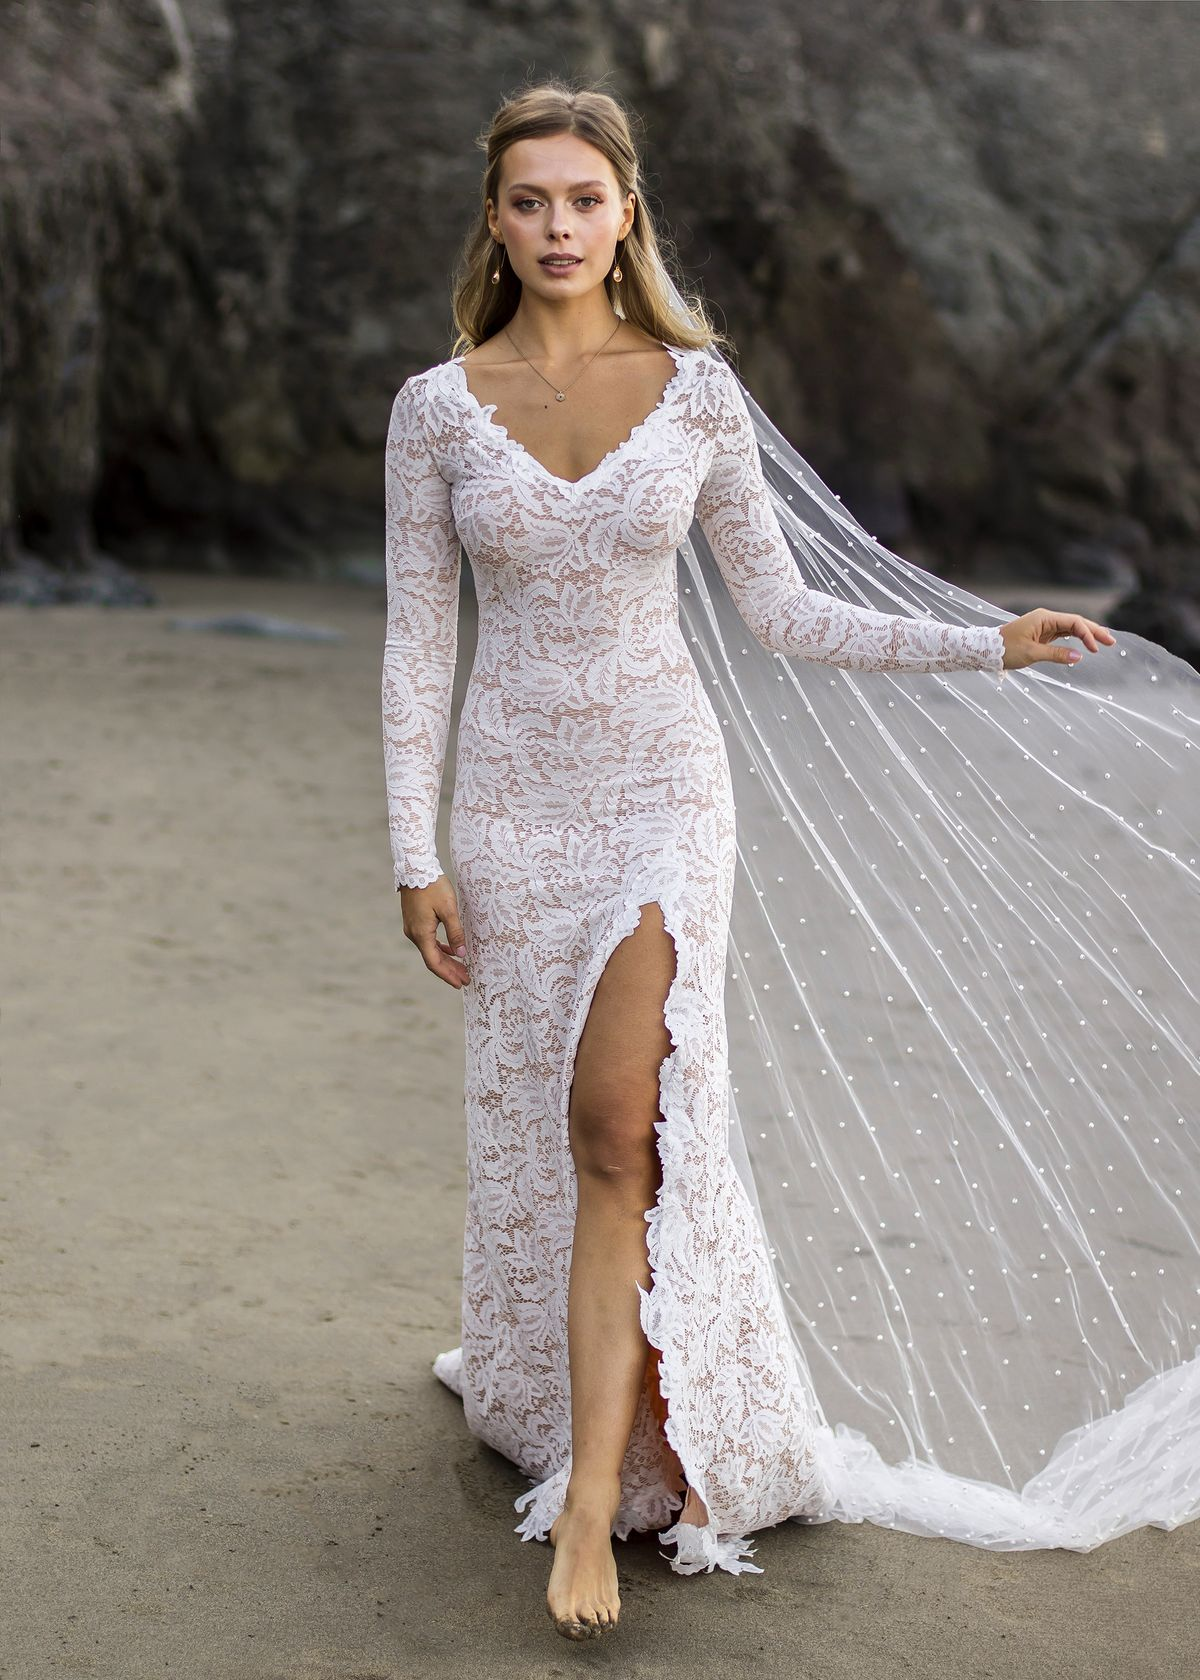 Salty haired brides are finding cannot get enough of this sexy stretch lace wedding dress with a daring high slit and scalloped hems. Hand crafted for every bride according to her individual measurements, this beloved style by Wear Your Love is once again on the up + up. Check this gown out in action on #ruffledblog!